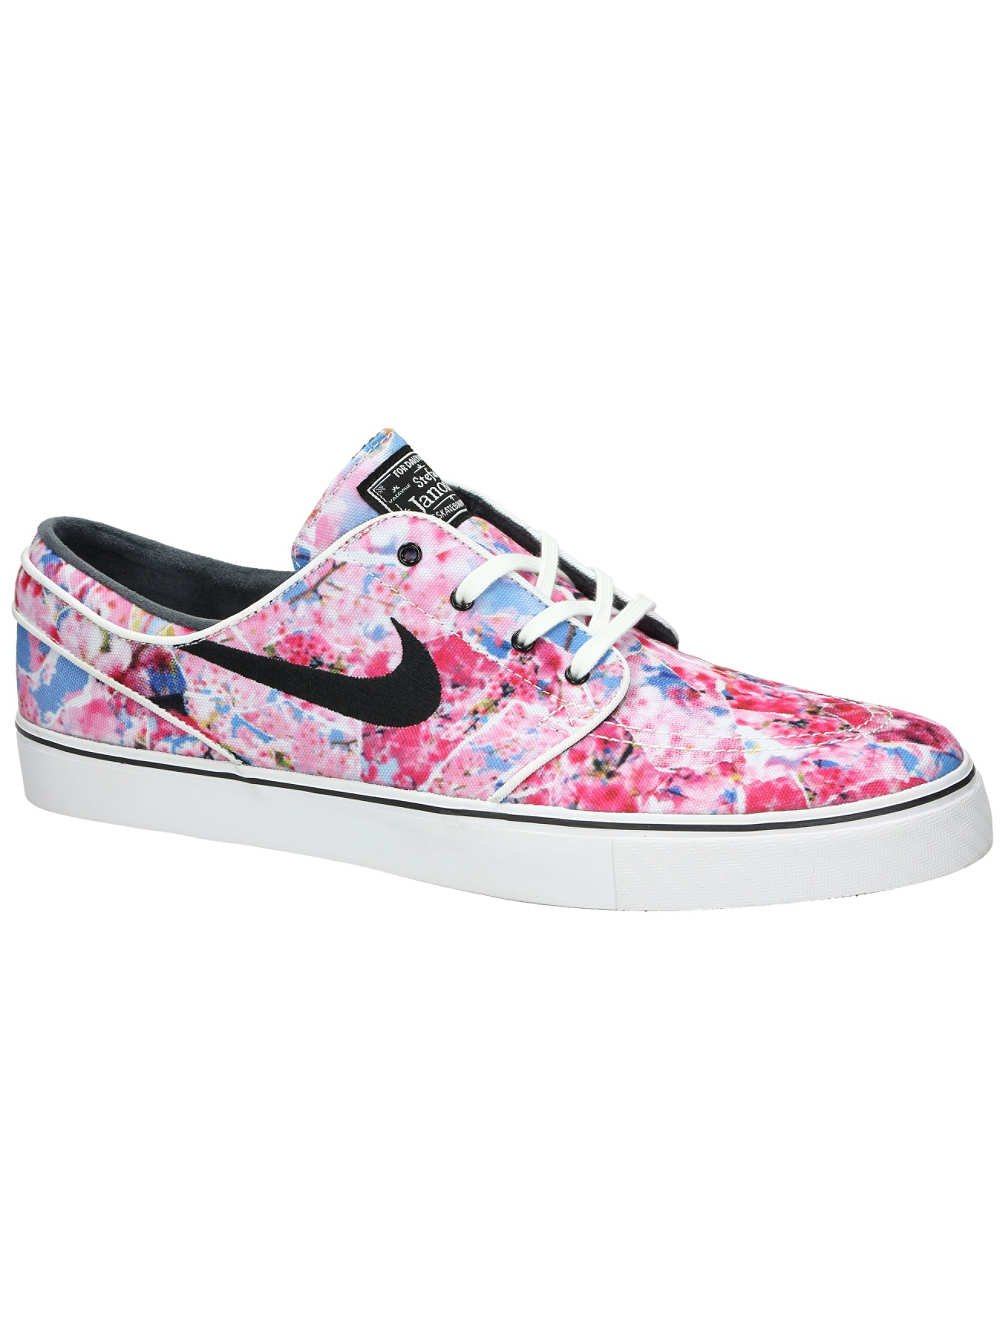 ef4b8d5775af Galleon - Nike SB Air Zoom Stefan Janoski Canvas Premium Dynamic Pink/Black/ White/Gum/Light Brown Skate Shoes-Men